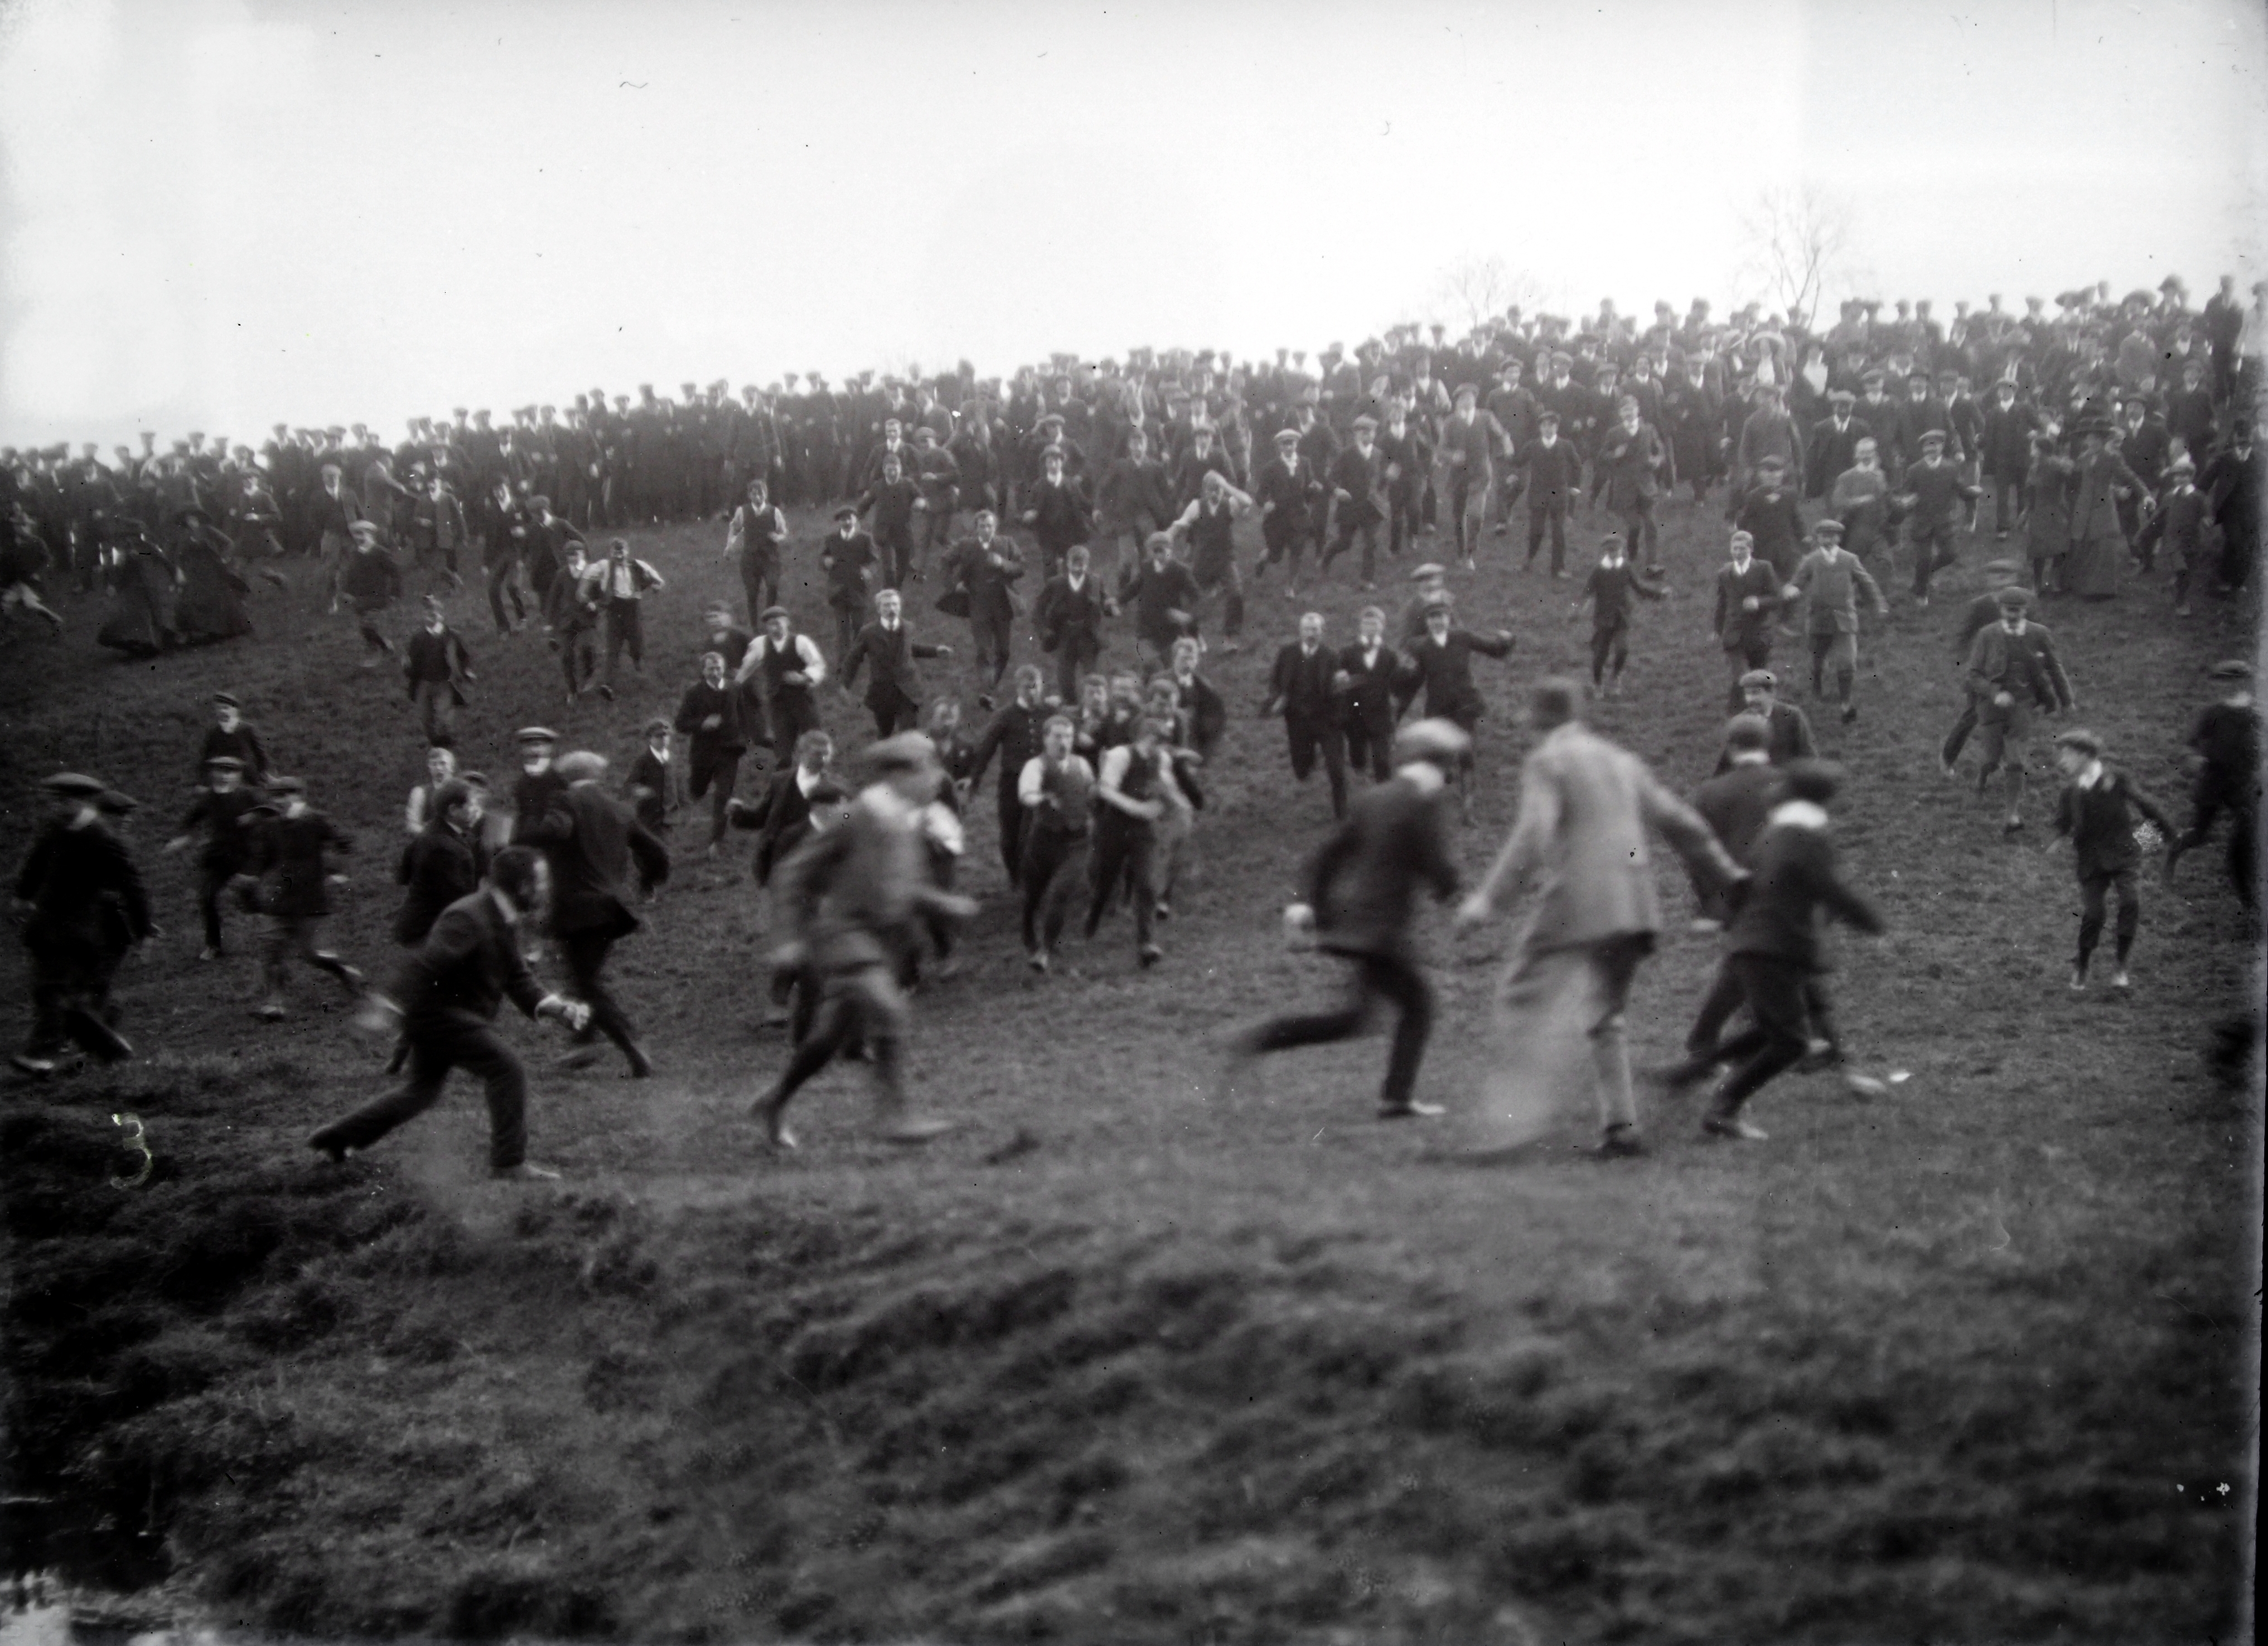 A historic picture of the Hallaton Bottle Kicking